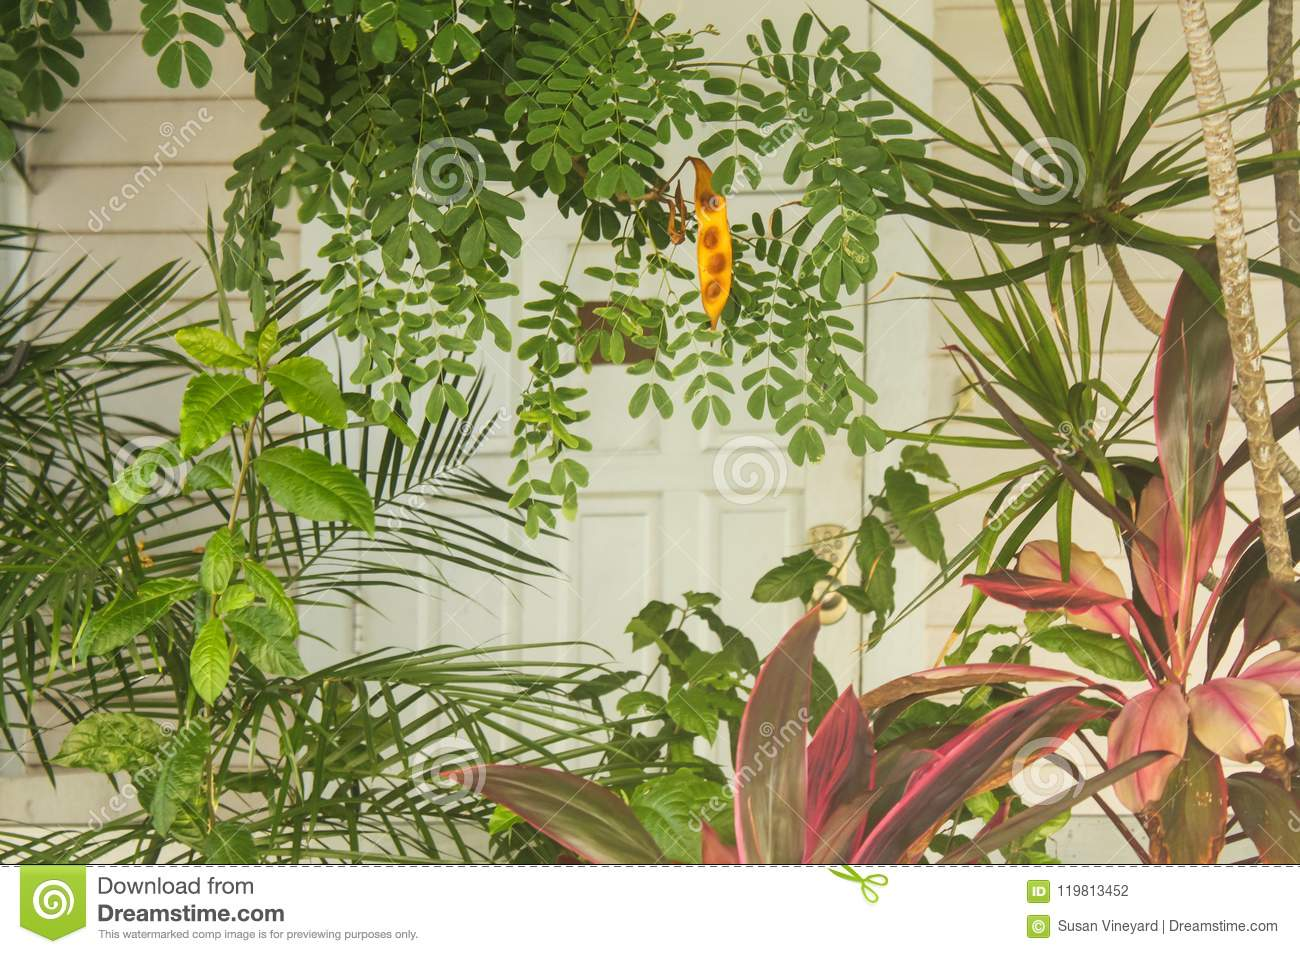 Tropical Island Key West background with colorful but muted plants in front of a blurred section of a white wooden house and door